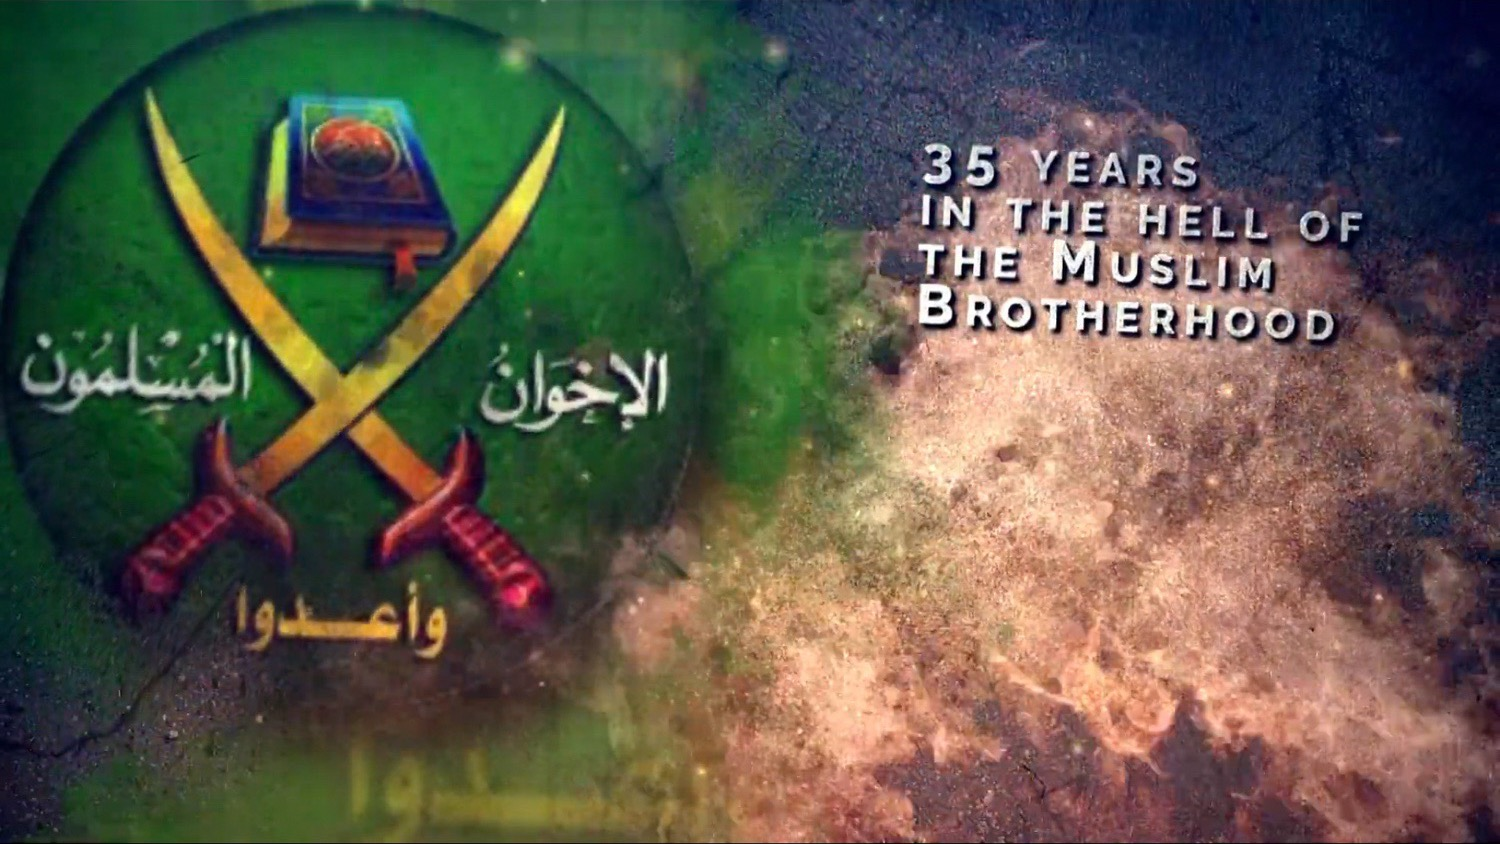 Coming soon on Global Watch Analysis: 35 years in the hell or Muslim Broterhood